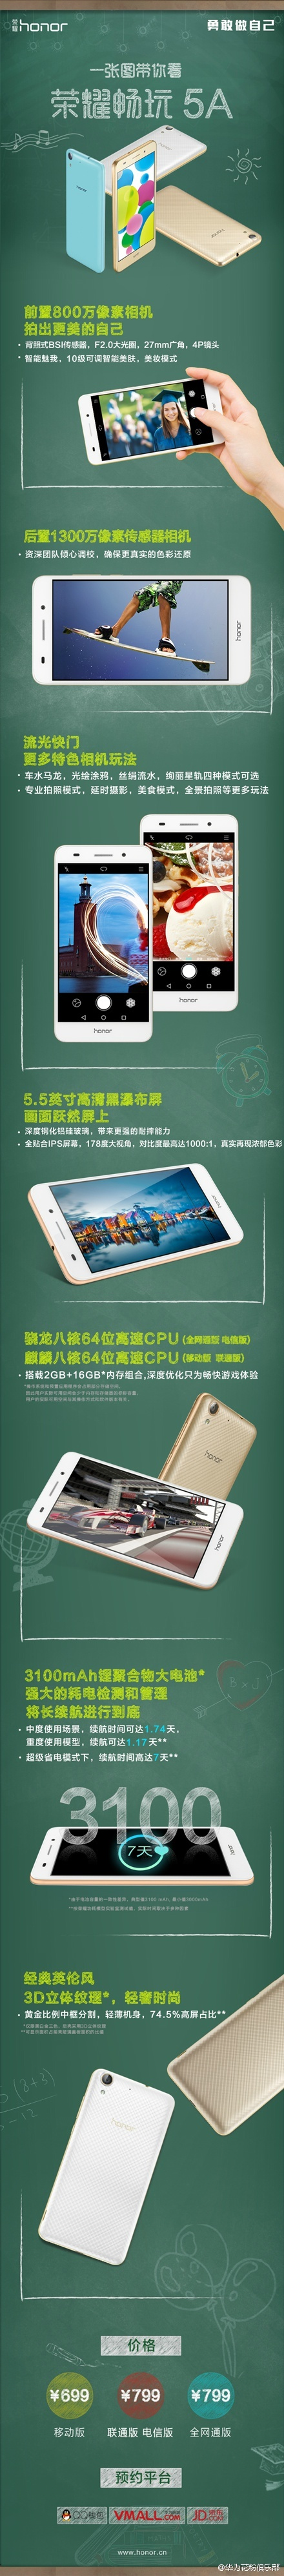 Honor 5a Spec 1